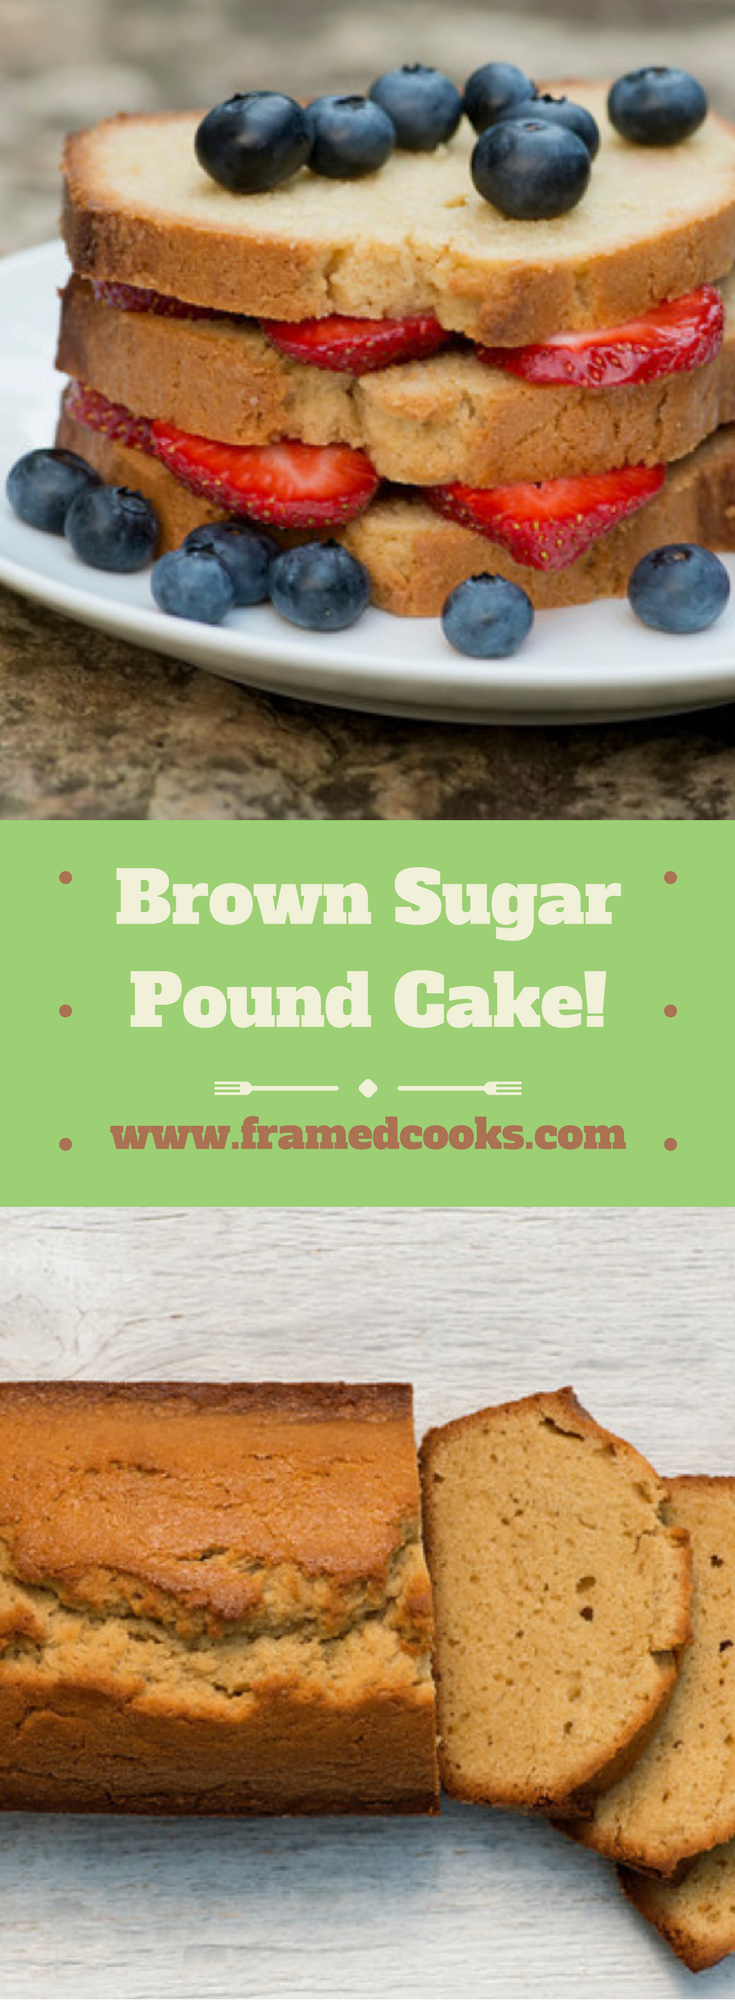 Jazz up your pound cake with the taste of brown sugar with this easy recipe!